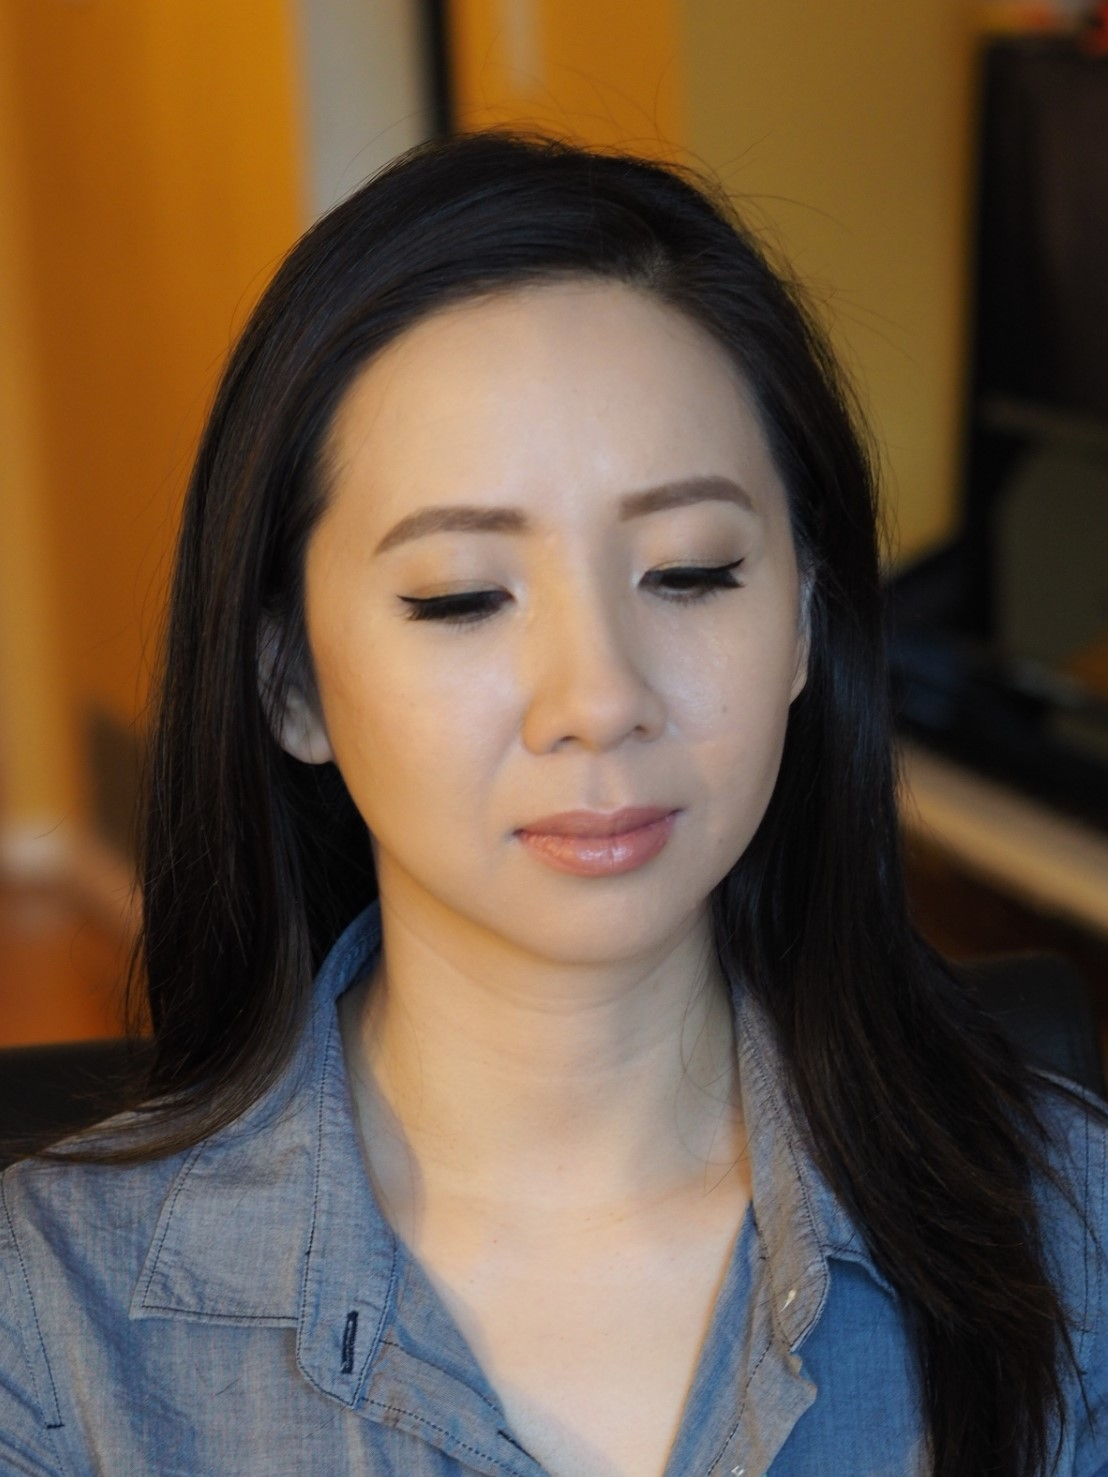 winged liner makeup style